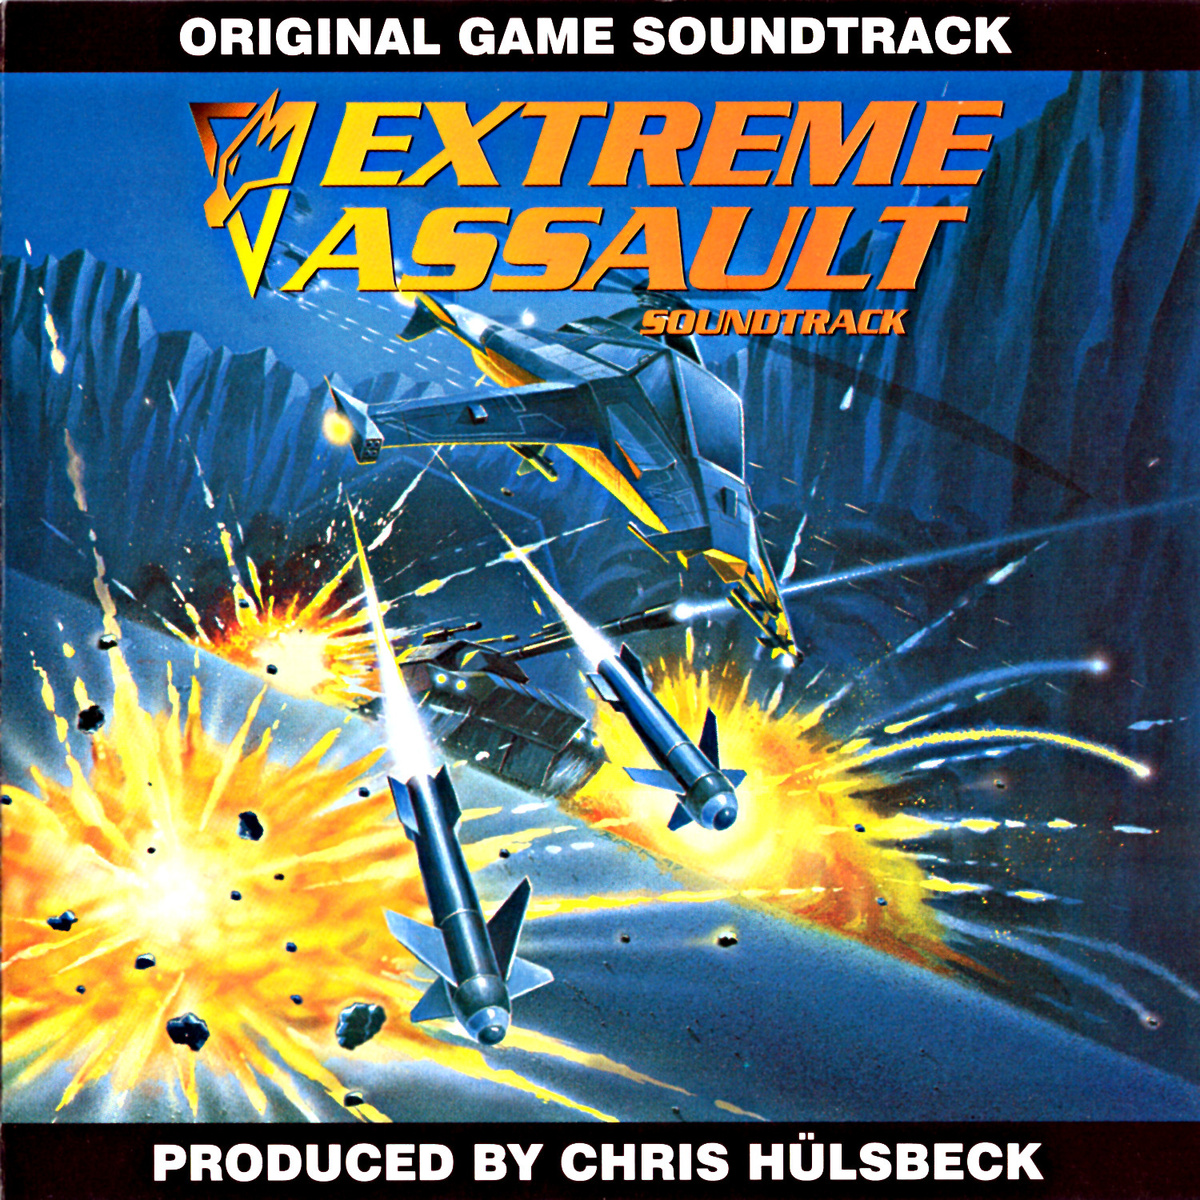 Extreme_Assault_Soundtrack__cover1200x1200.jpg